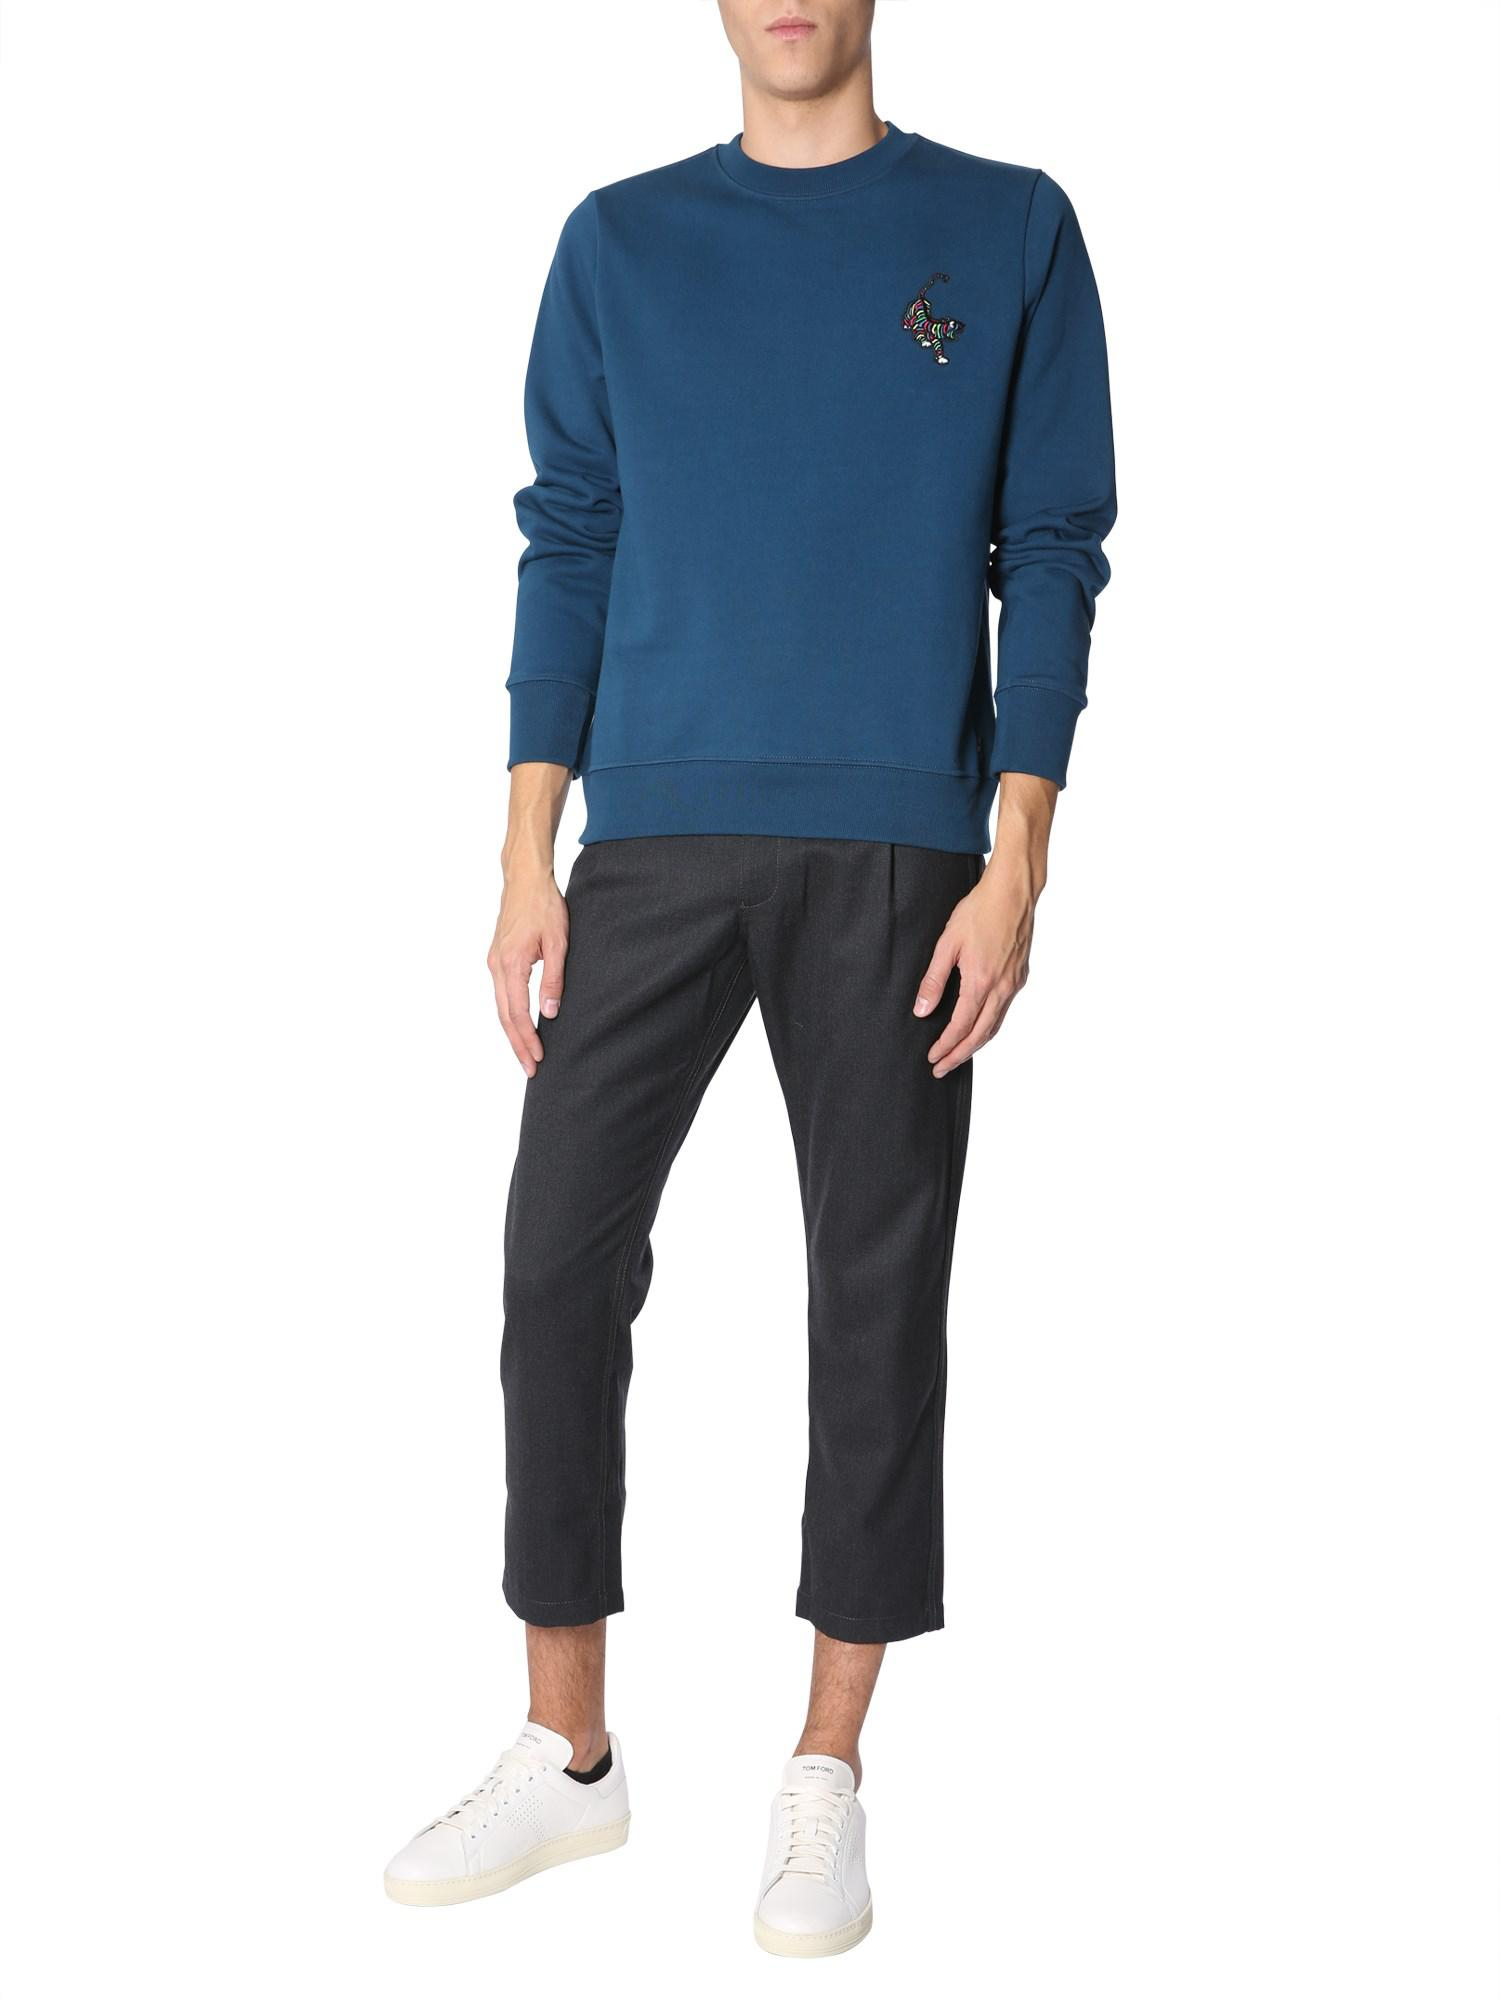 Lyst - PS by Paul Smith Crew Neck Cotton Sweatshirt With Patch Tiger ... 336789540